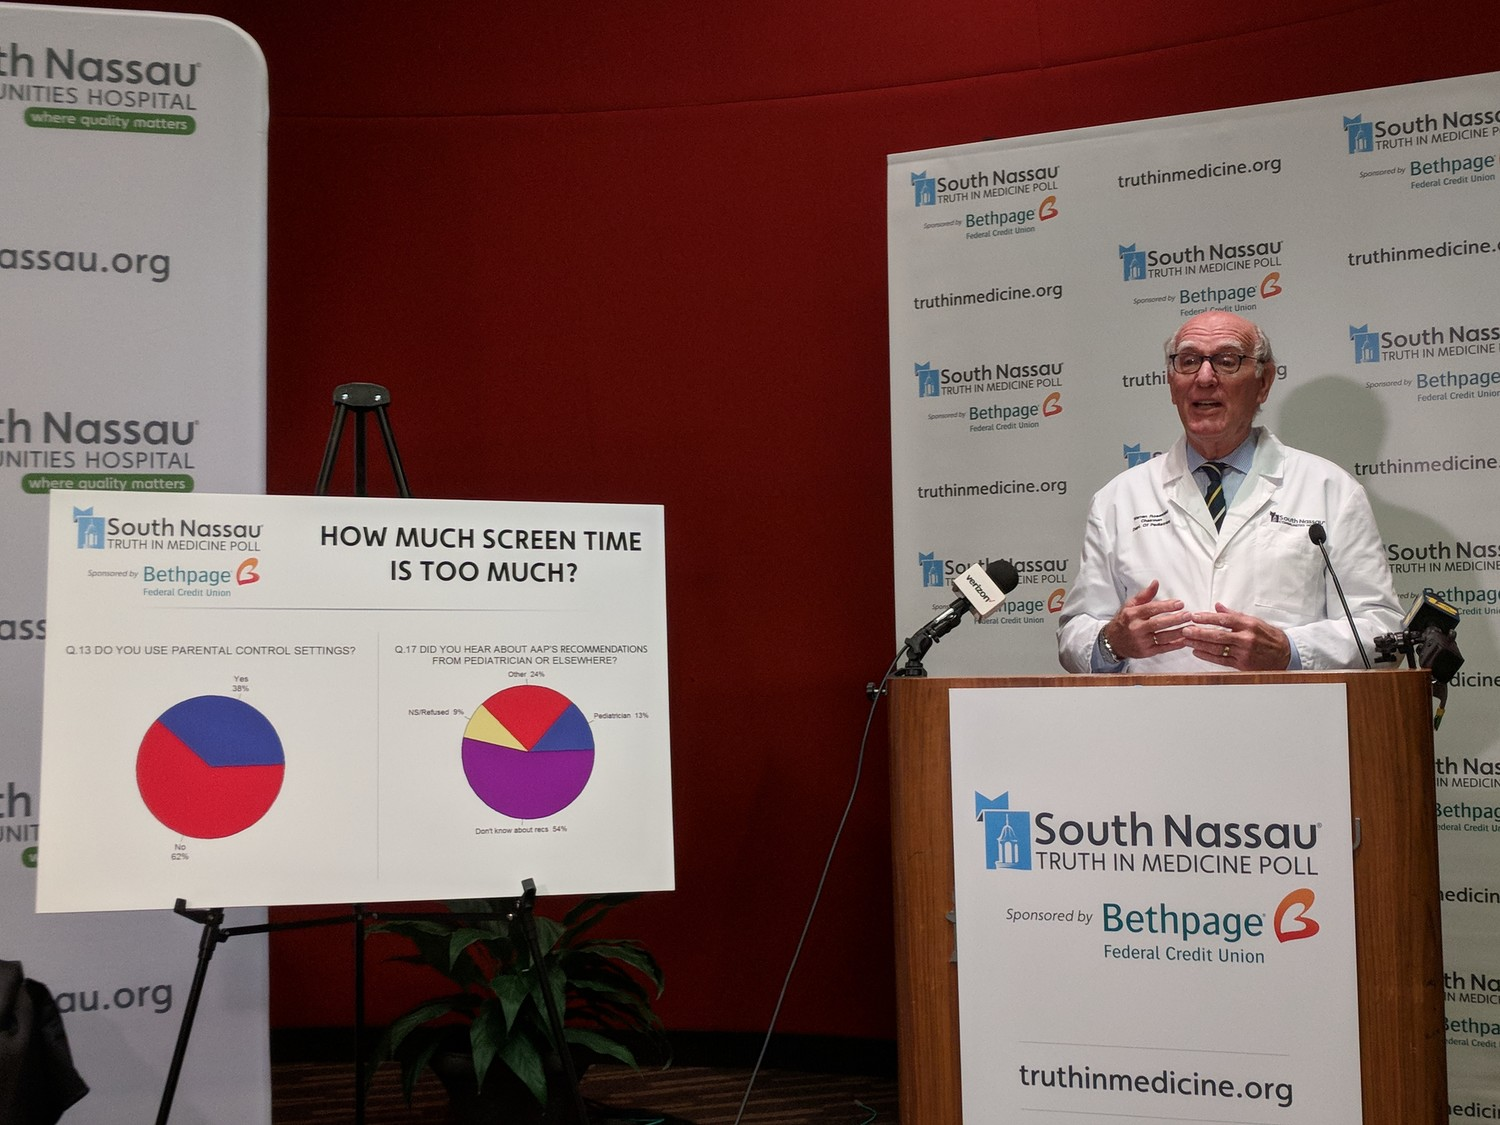 Dr. Warren Rosenfeld, chairman of pediatrics at South Nassau Communities Hospital, explained at a May 10 news conference the associations between excessive screen time among children and delays in their brain development.